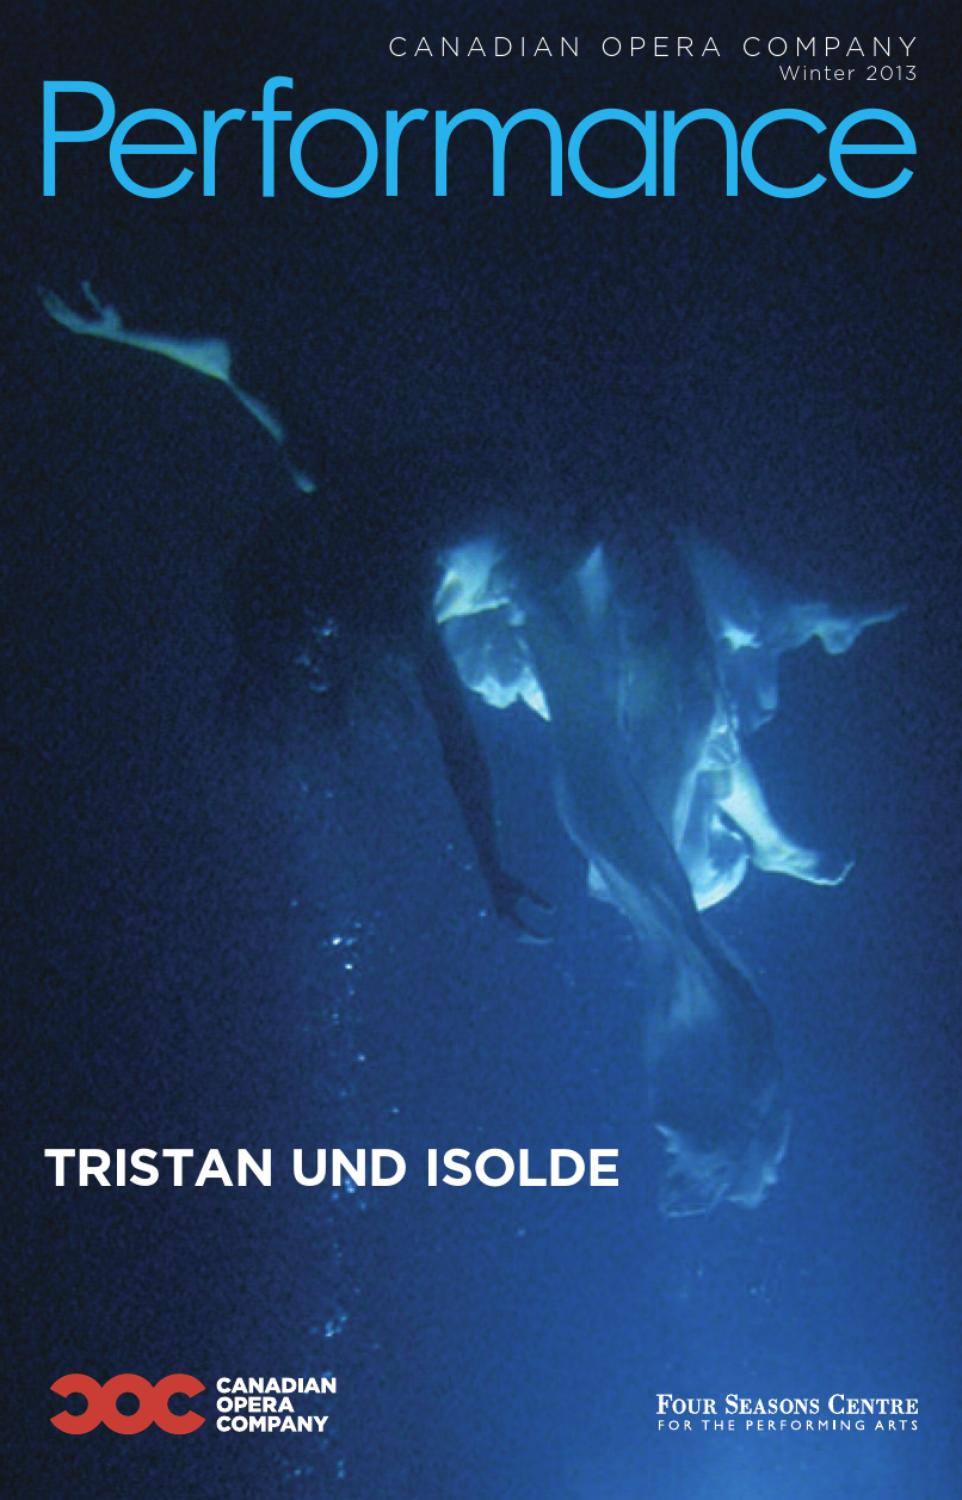 Tristan und Isolde House Program by Canadian Opera Company